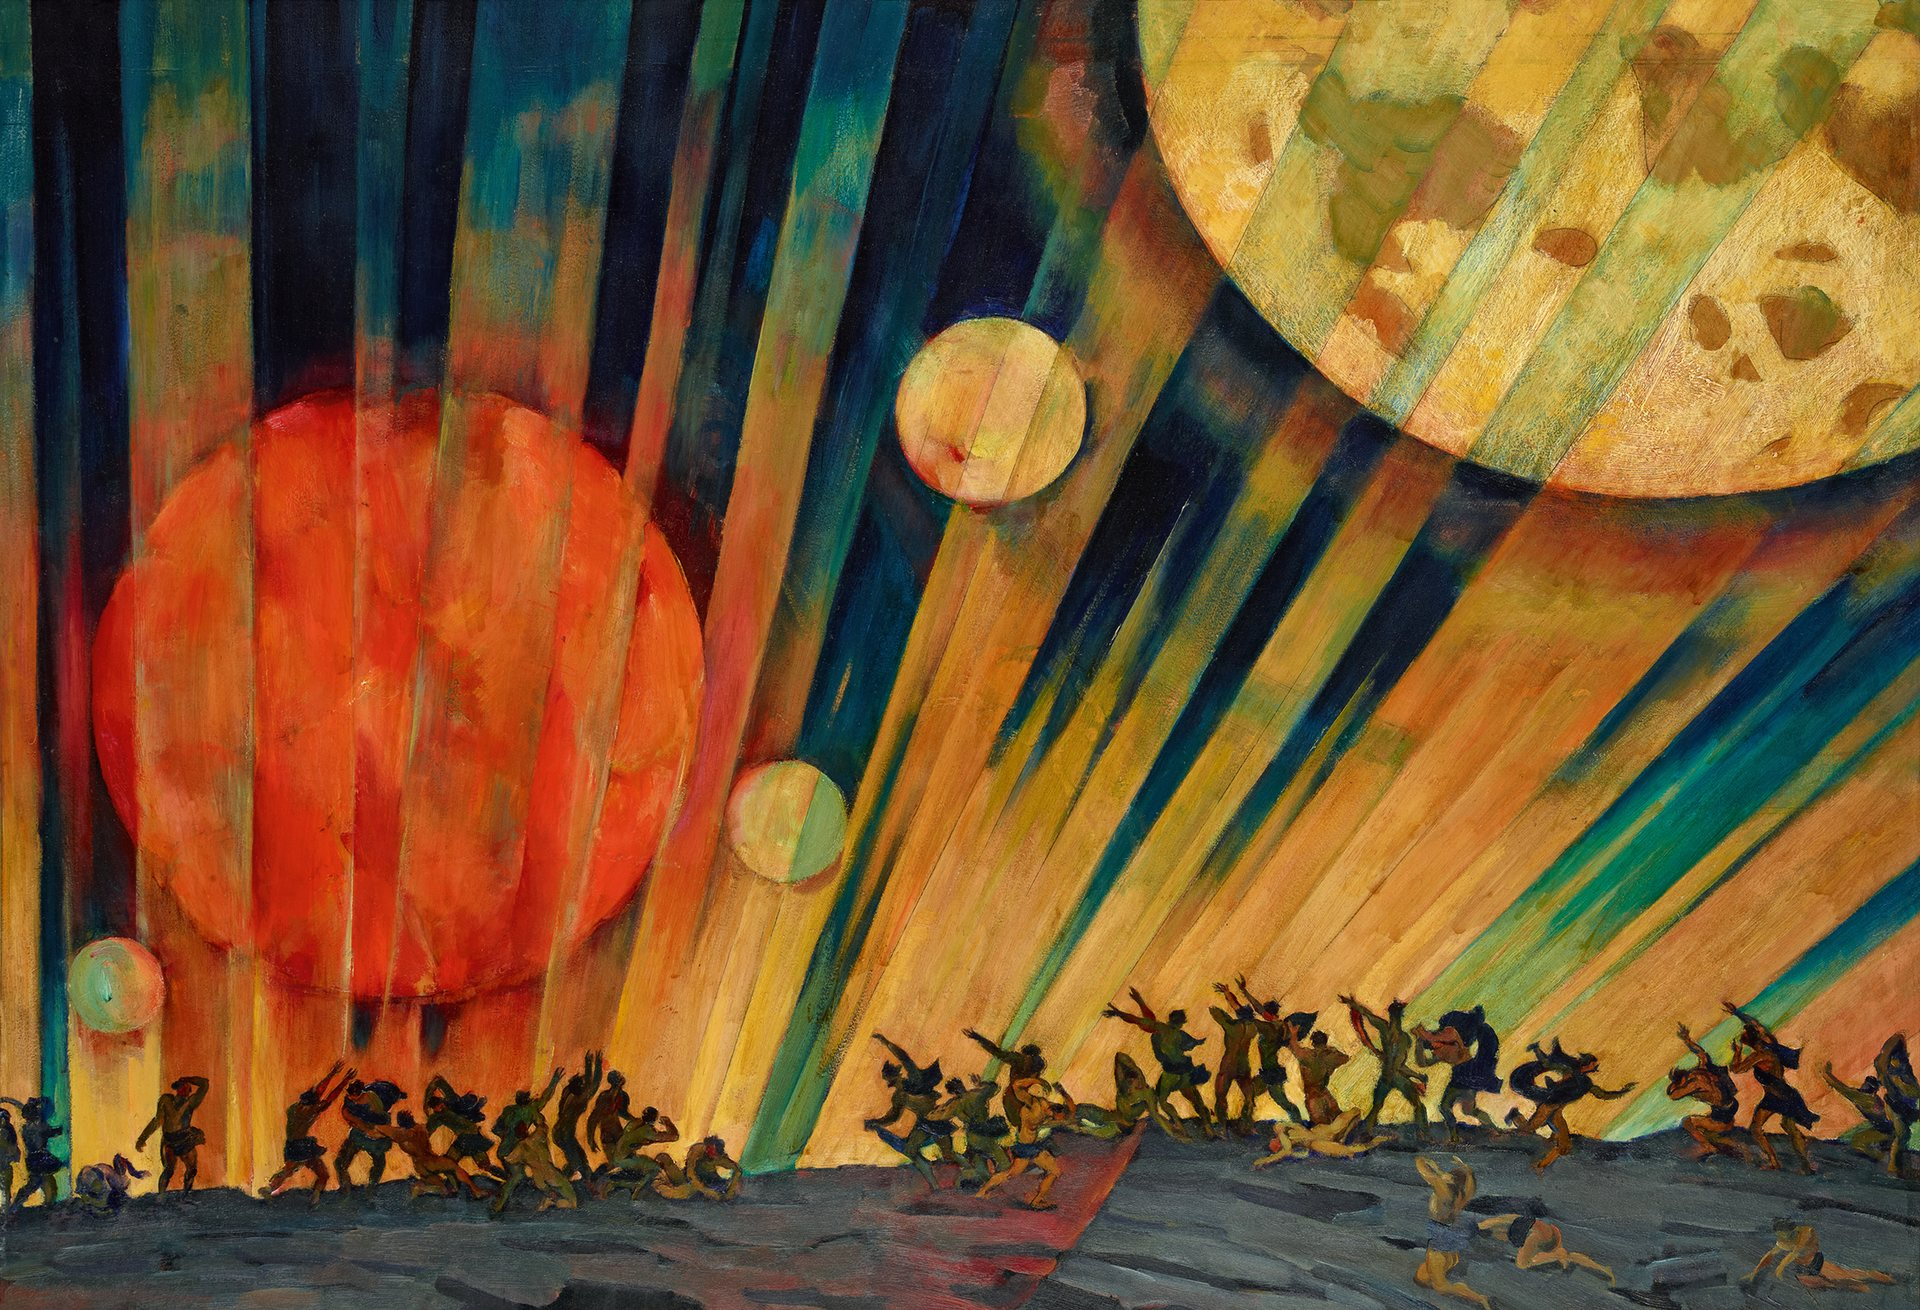 new-planet-1921-by-konstantin-yuon-photograph-state-tretyakov-gallery-moscow-dacs-2017